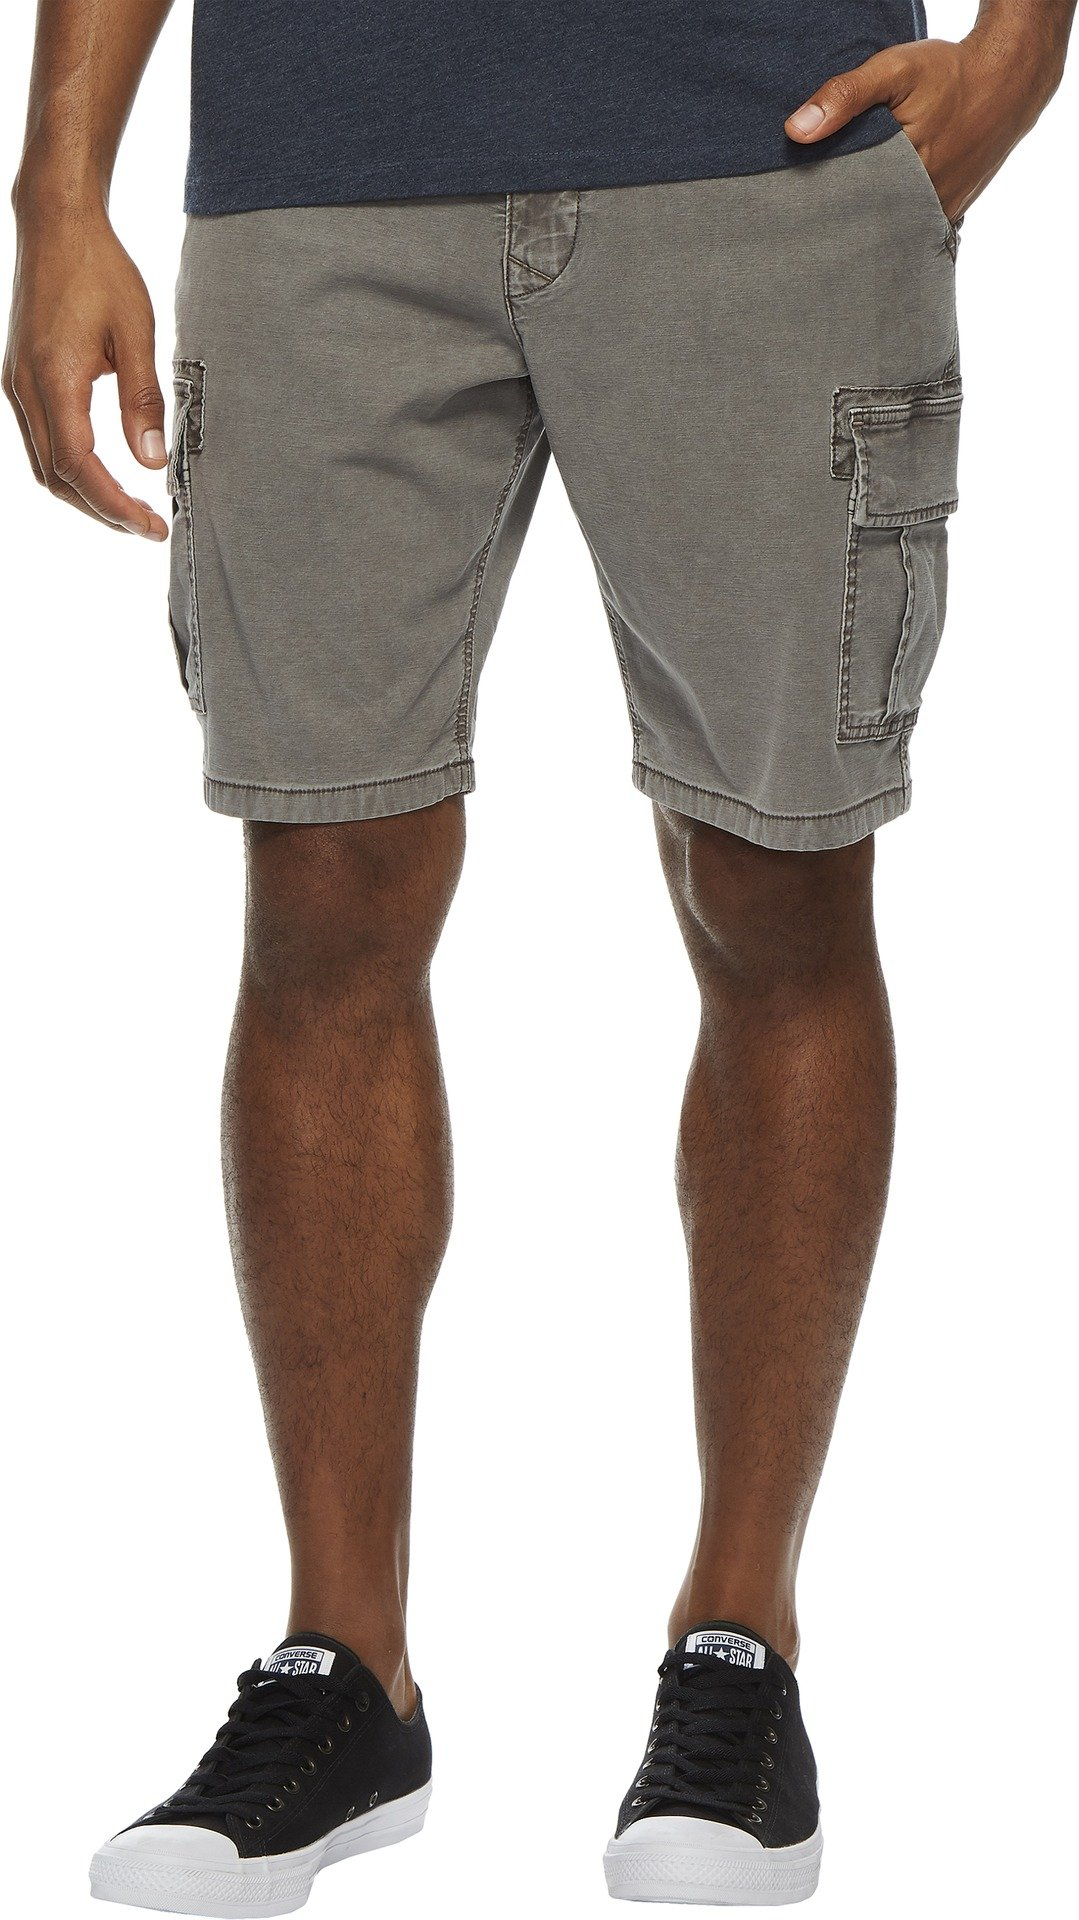 Lucky Brand Men's Stretch Sateen Cargo Shorts Charcoal Grey 34W x One SizeL